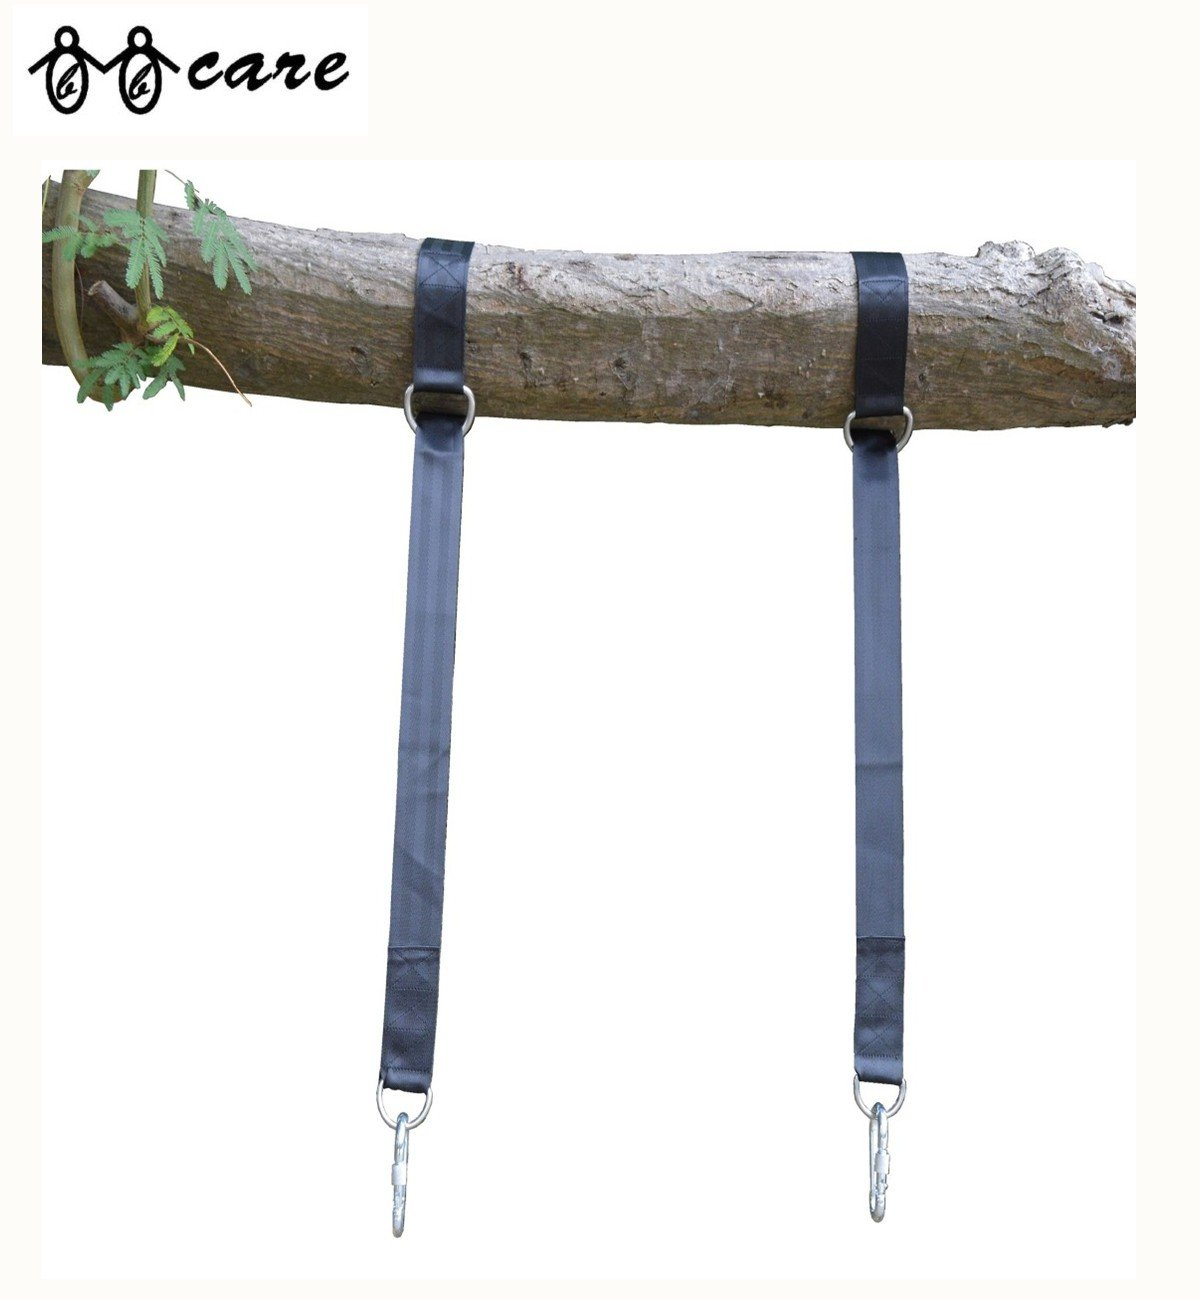 BBCare Tree Swing Hanging Kit, 2pcs 120cm Extra Long Straps with 2 Carabiners and Snap Hooks w Locking Screw Gate